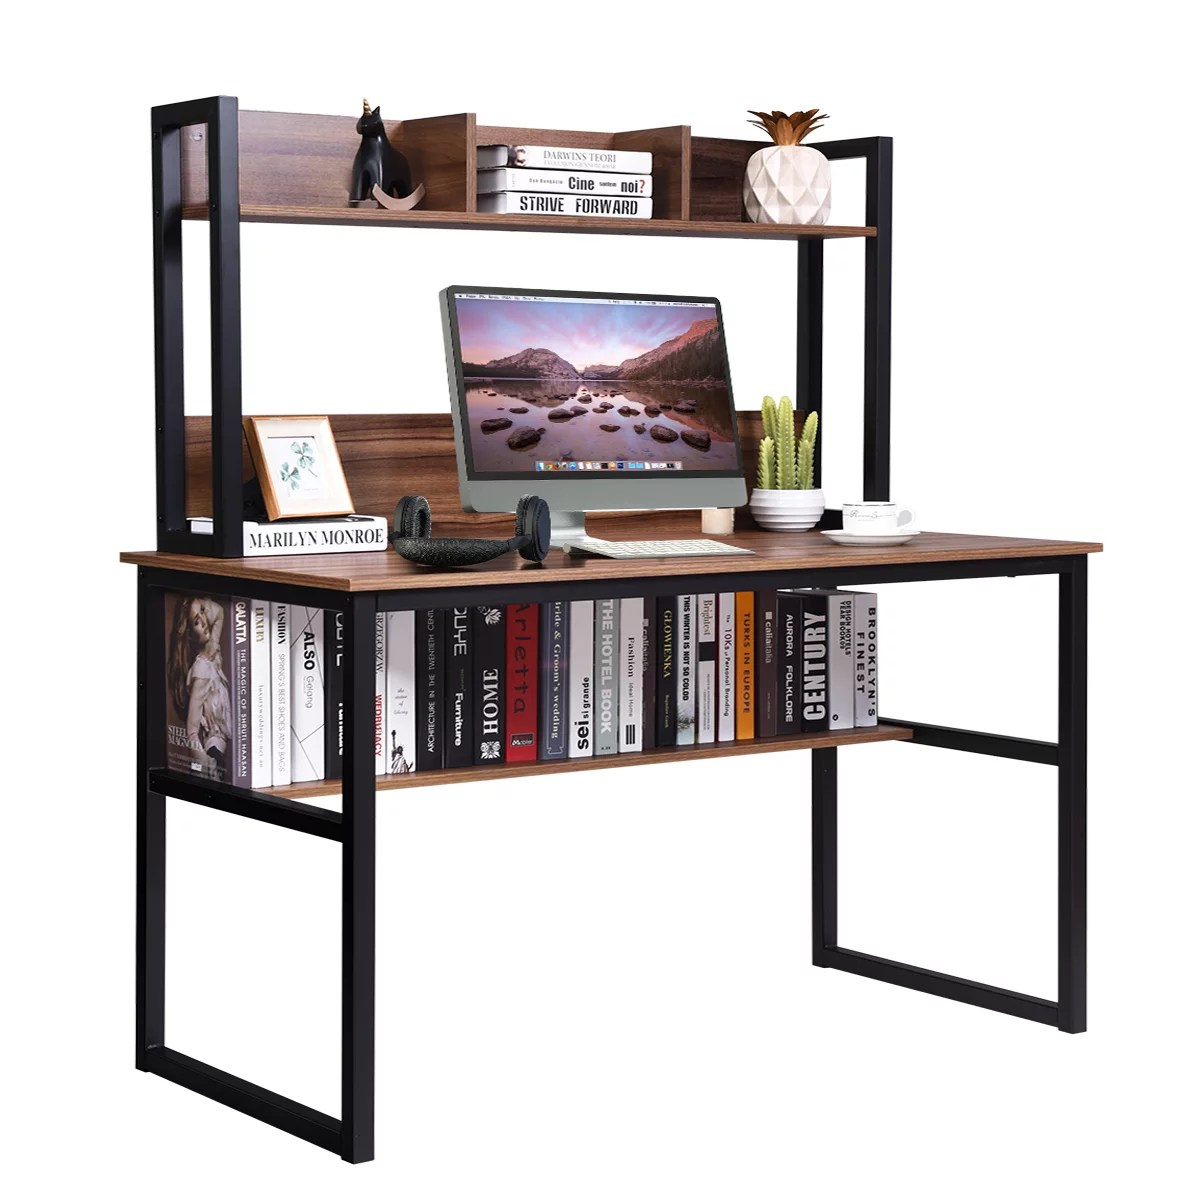 costway computer desk with hutch bookshelf home office study wrting desk space saving